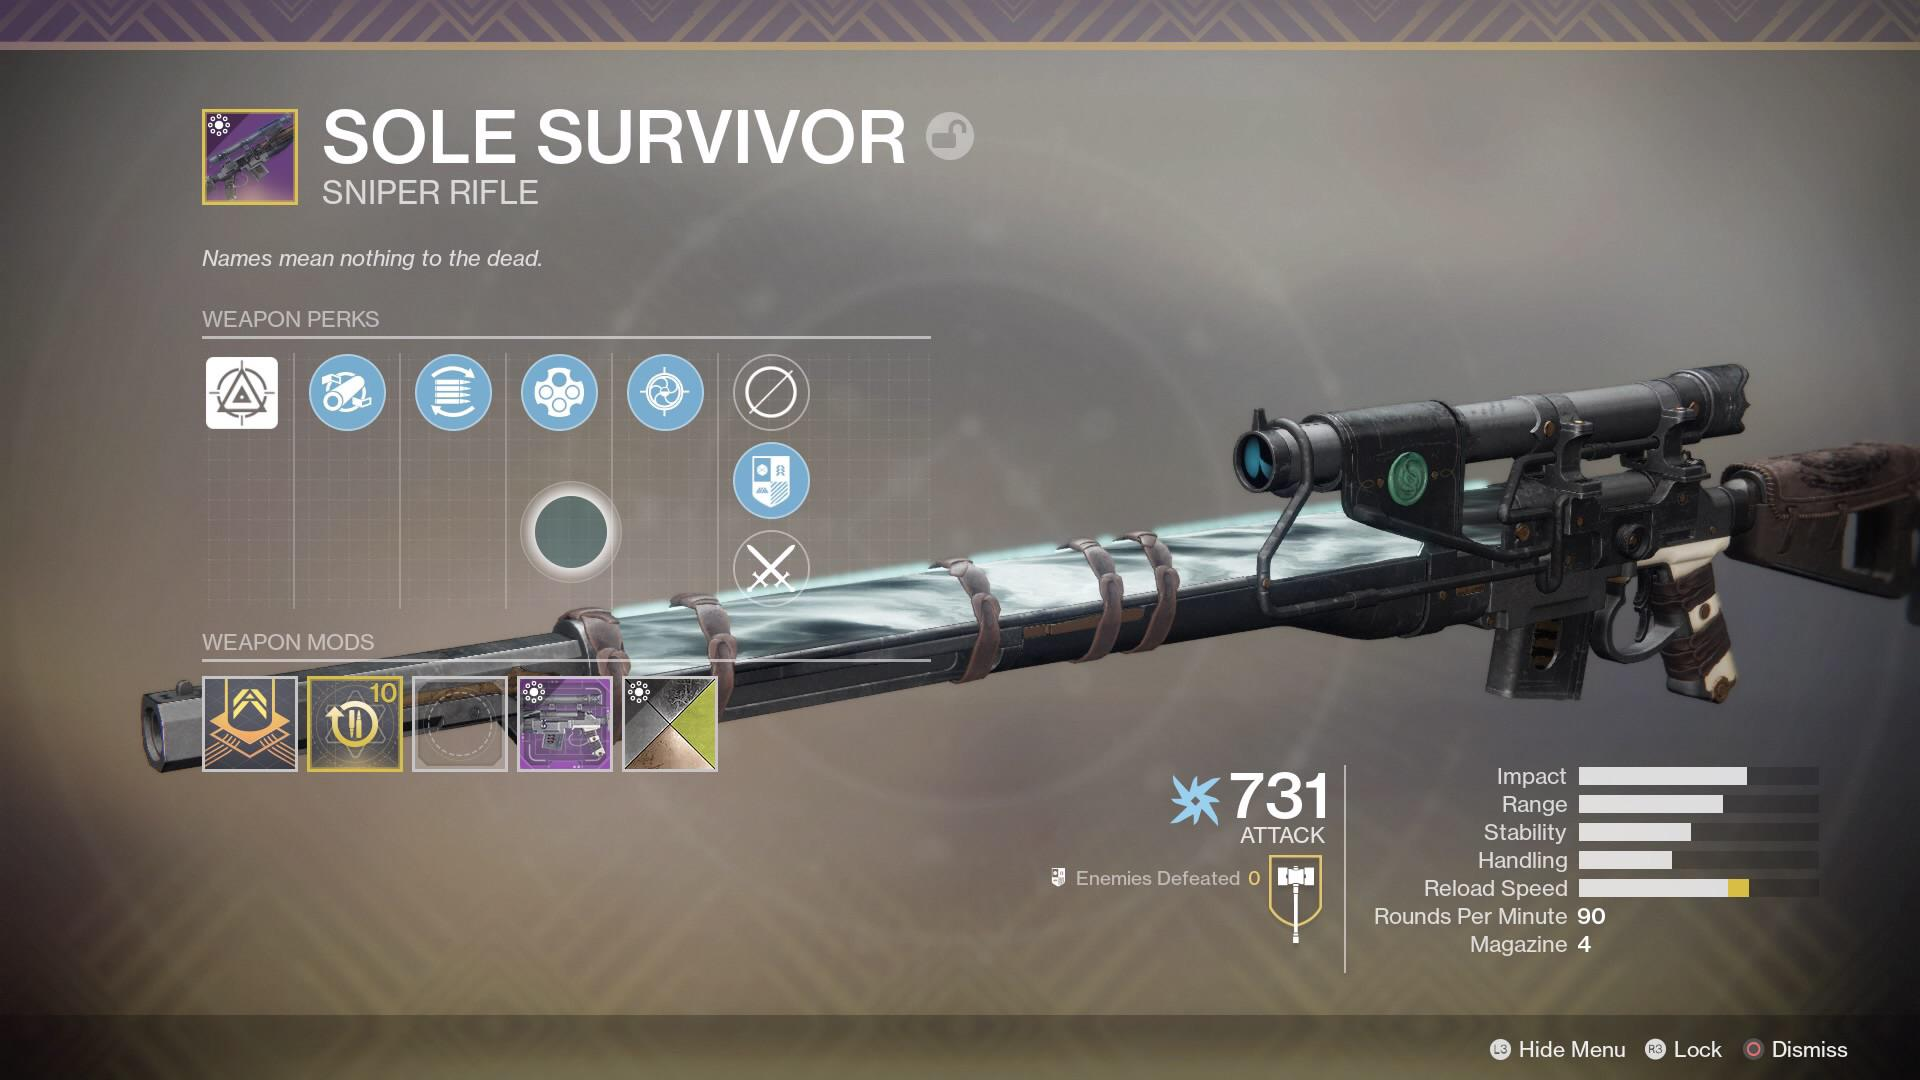 The Best PvE Legendary Sniper – God Roll Sole Survivor WILL BE META